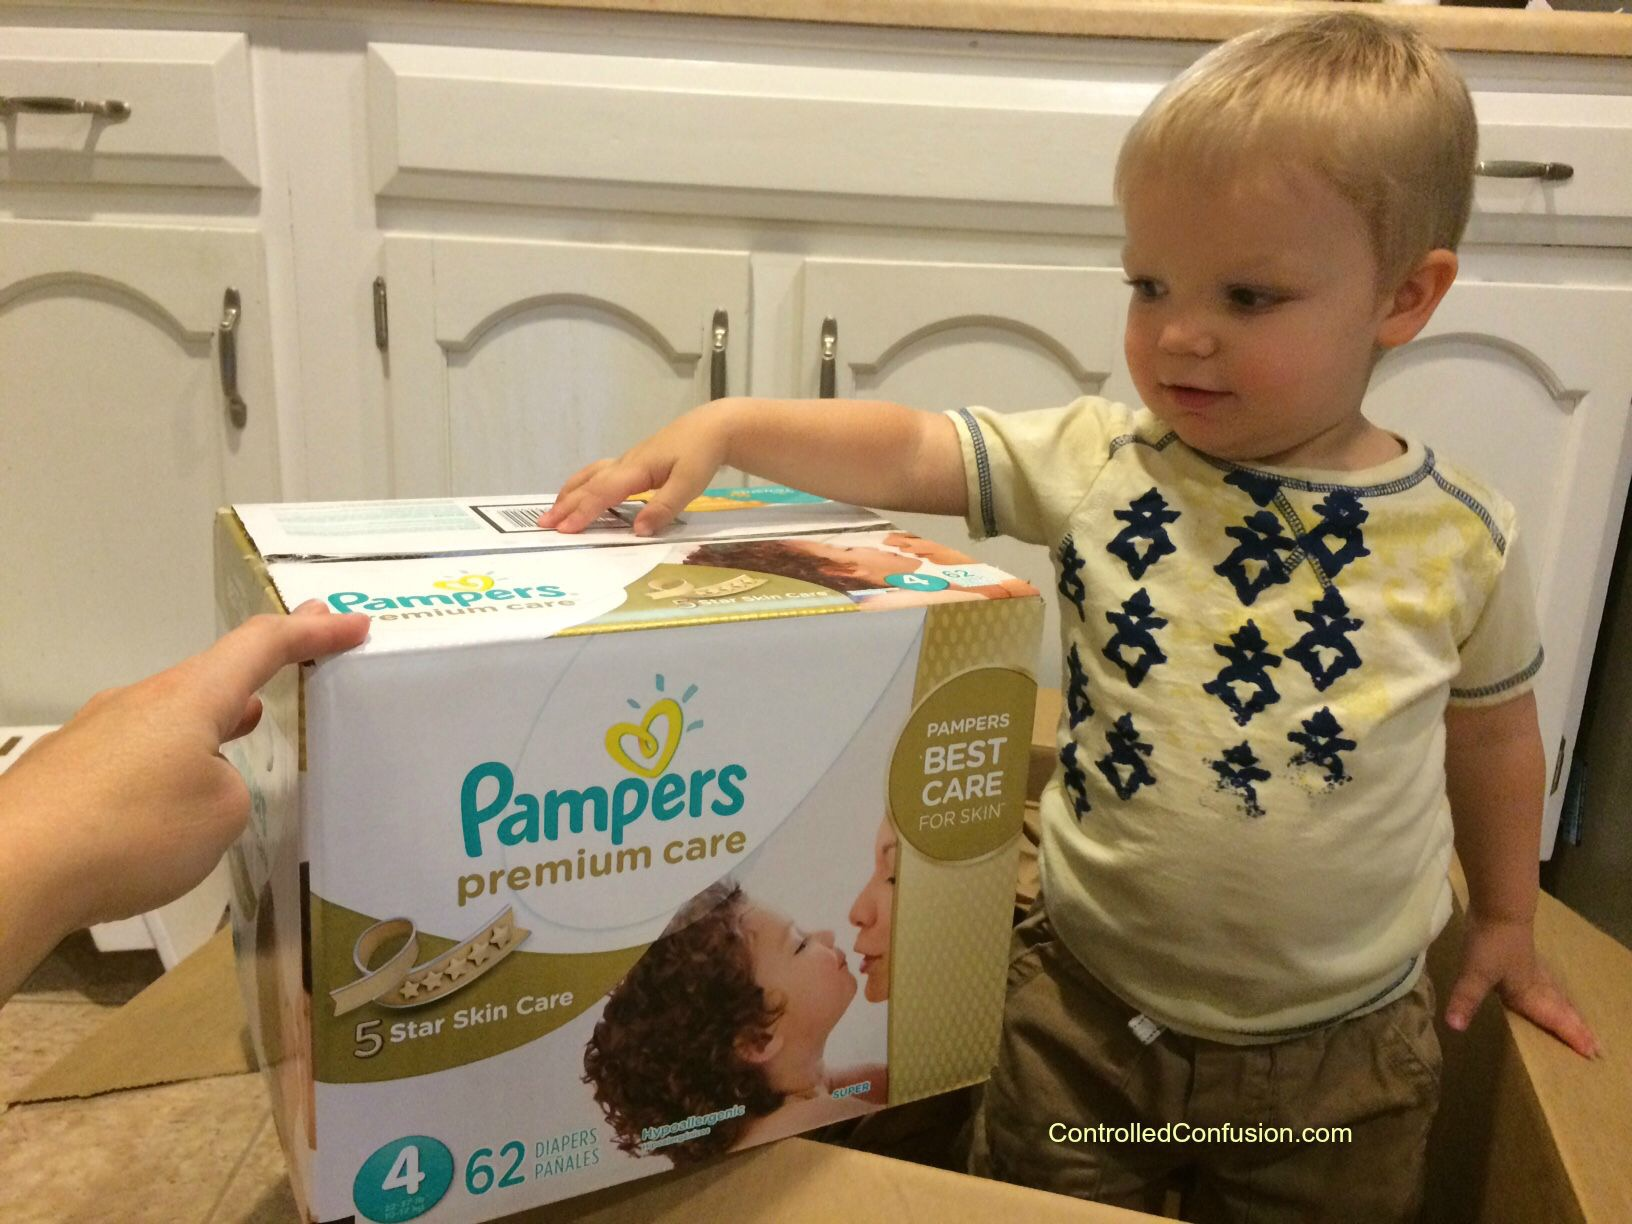 My #MothersPromise With Pampers Premium Diapers